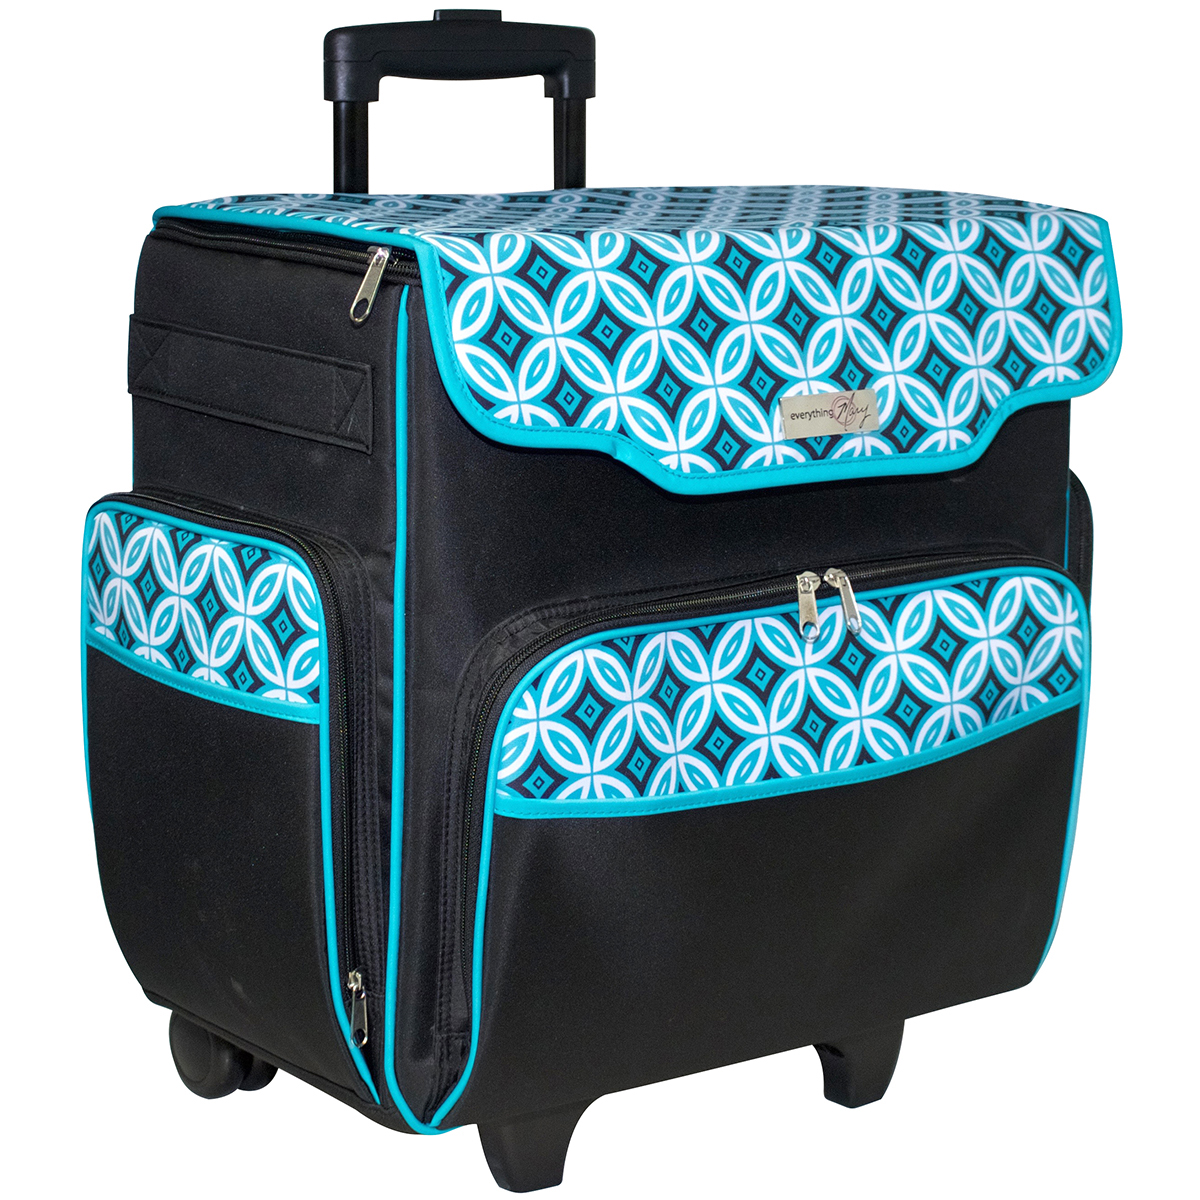 Everything Mary - Everything Mary Rolling Papercraft Tote-Teal Black -  Walmart.com 36c37efcbf